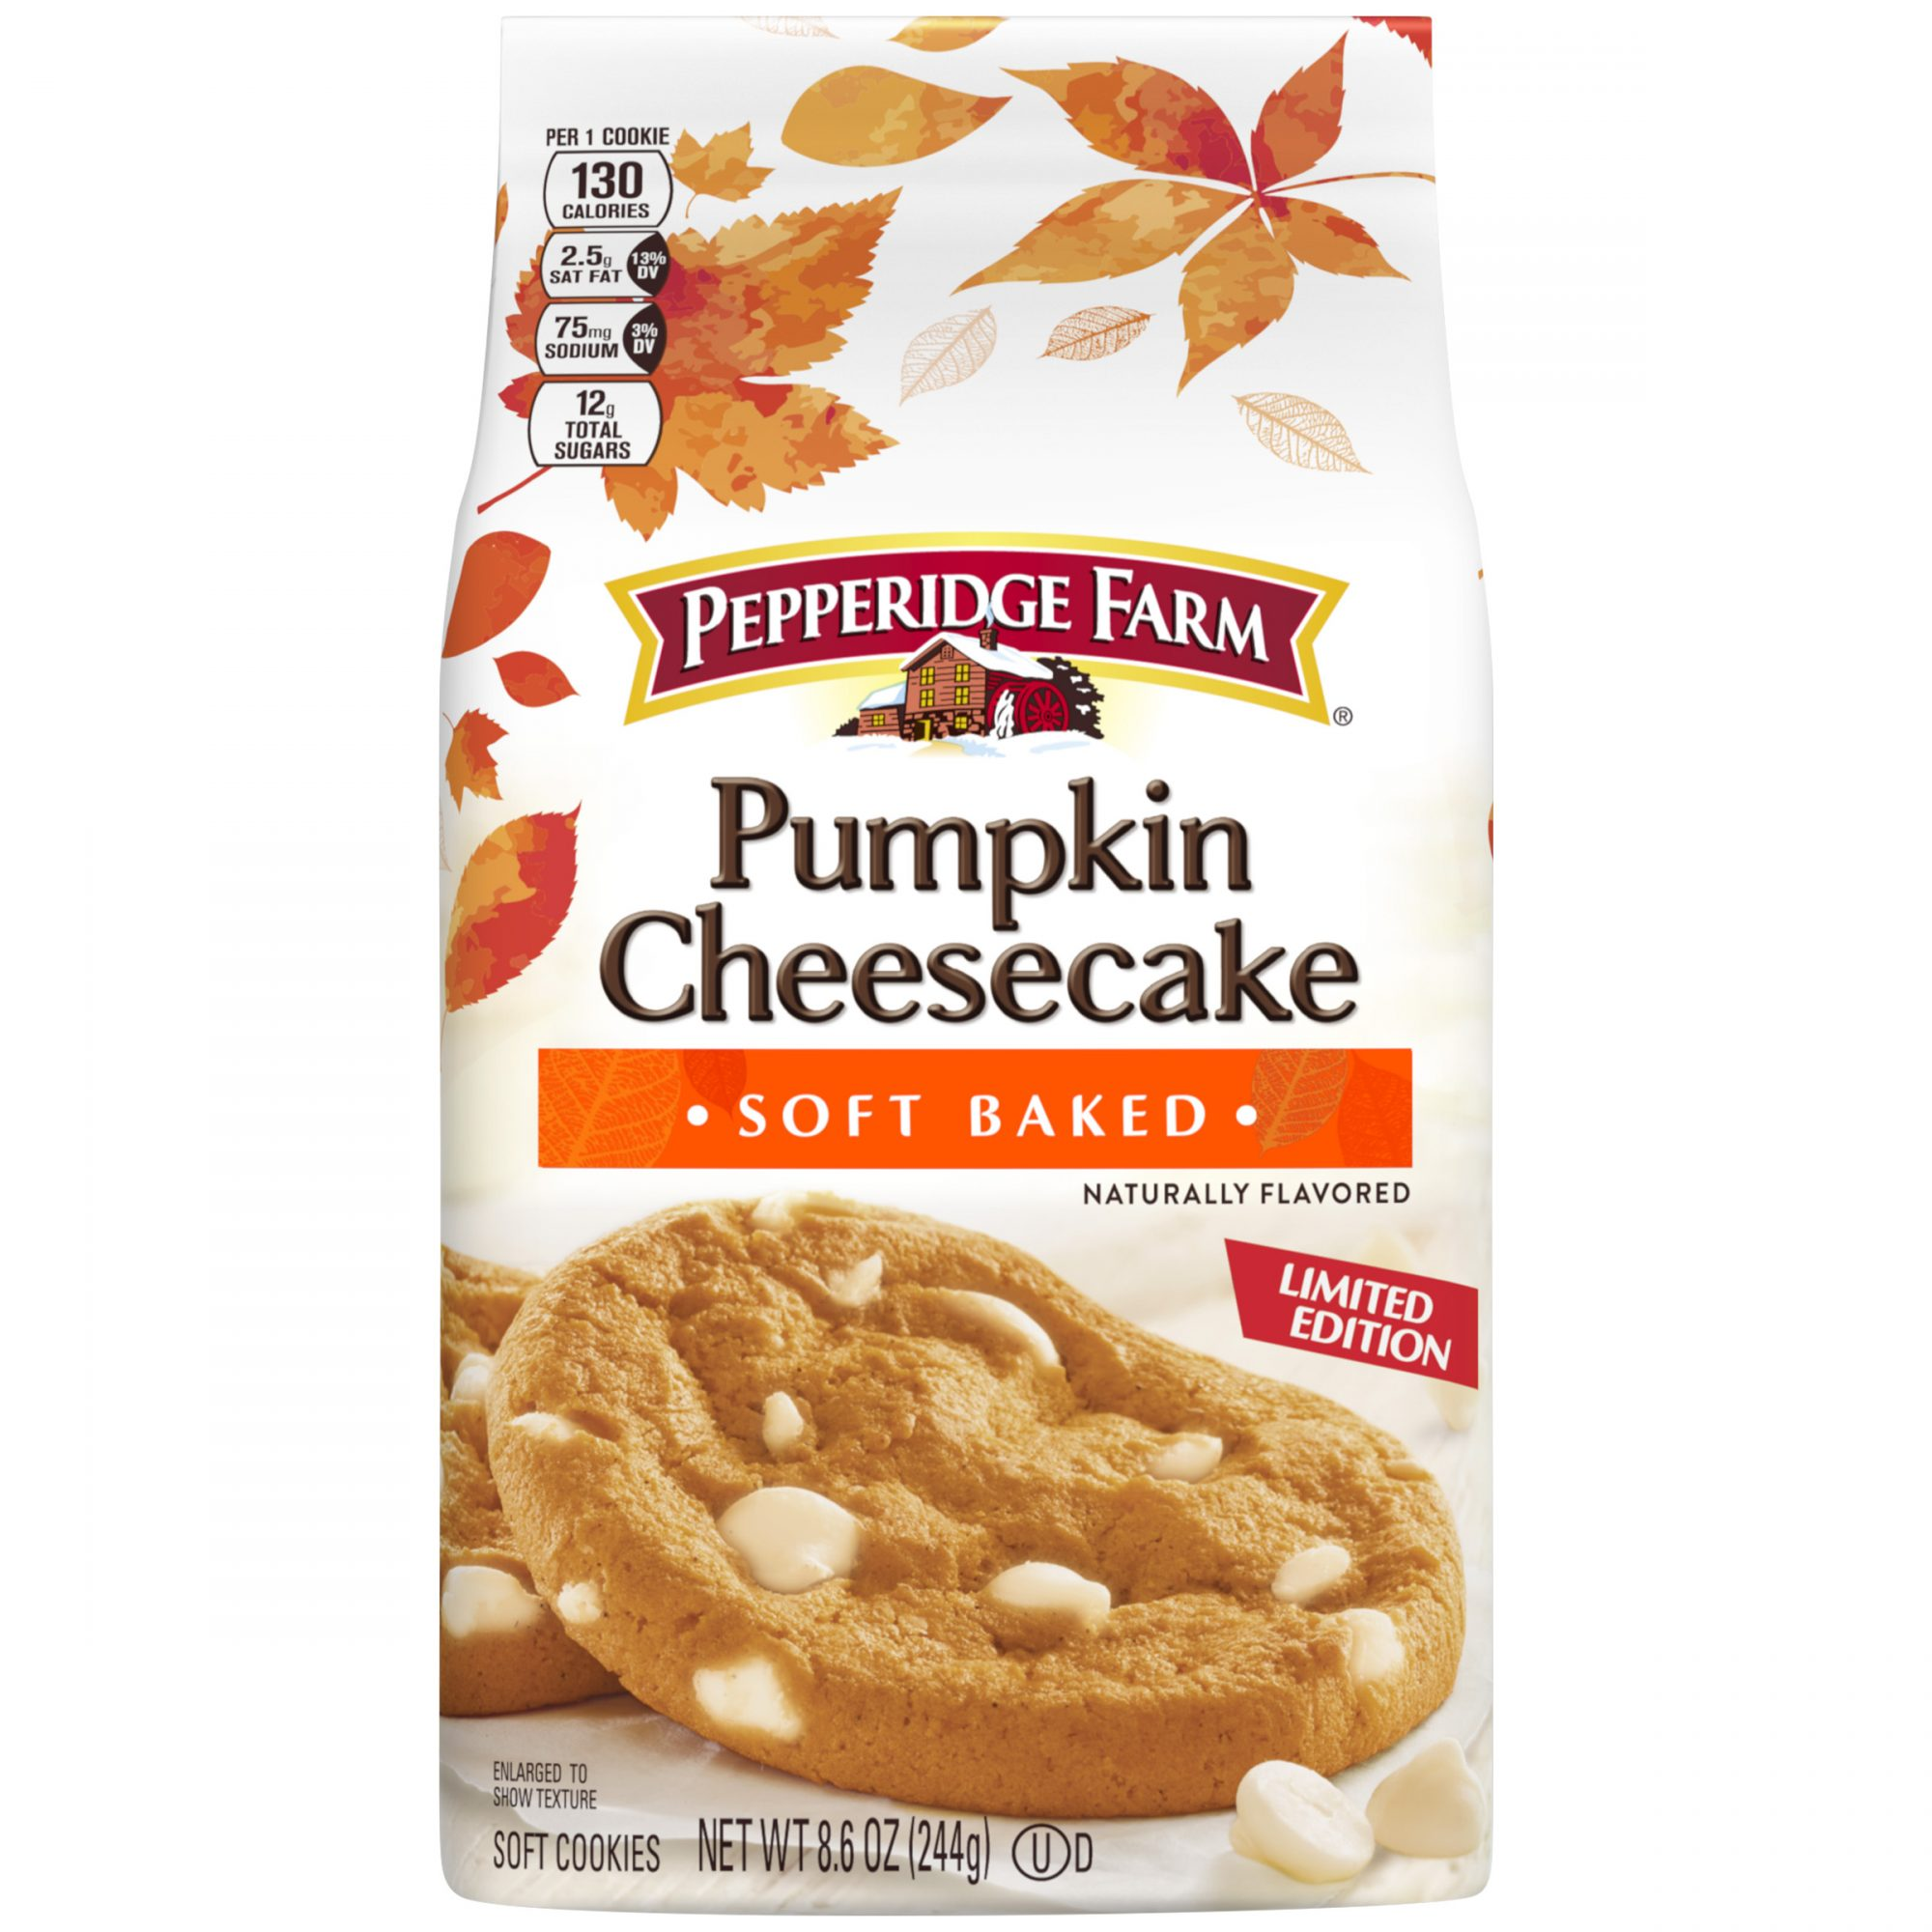 a package of Pumpkin Cheesecake Cookies on a white background